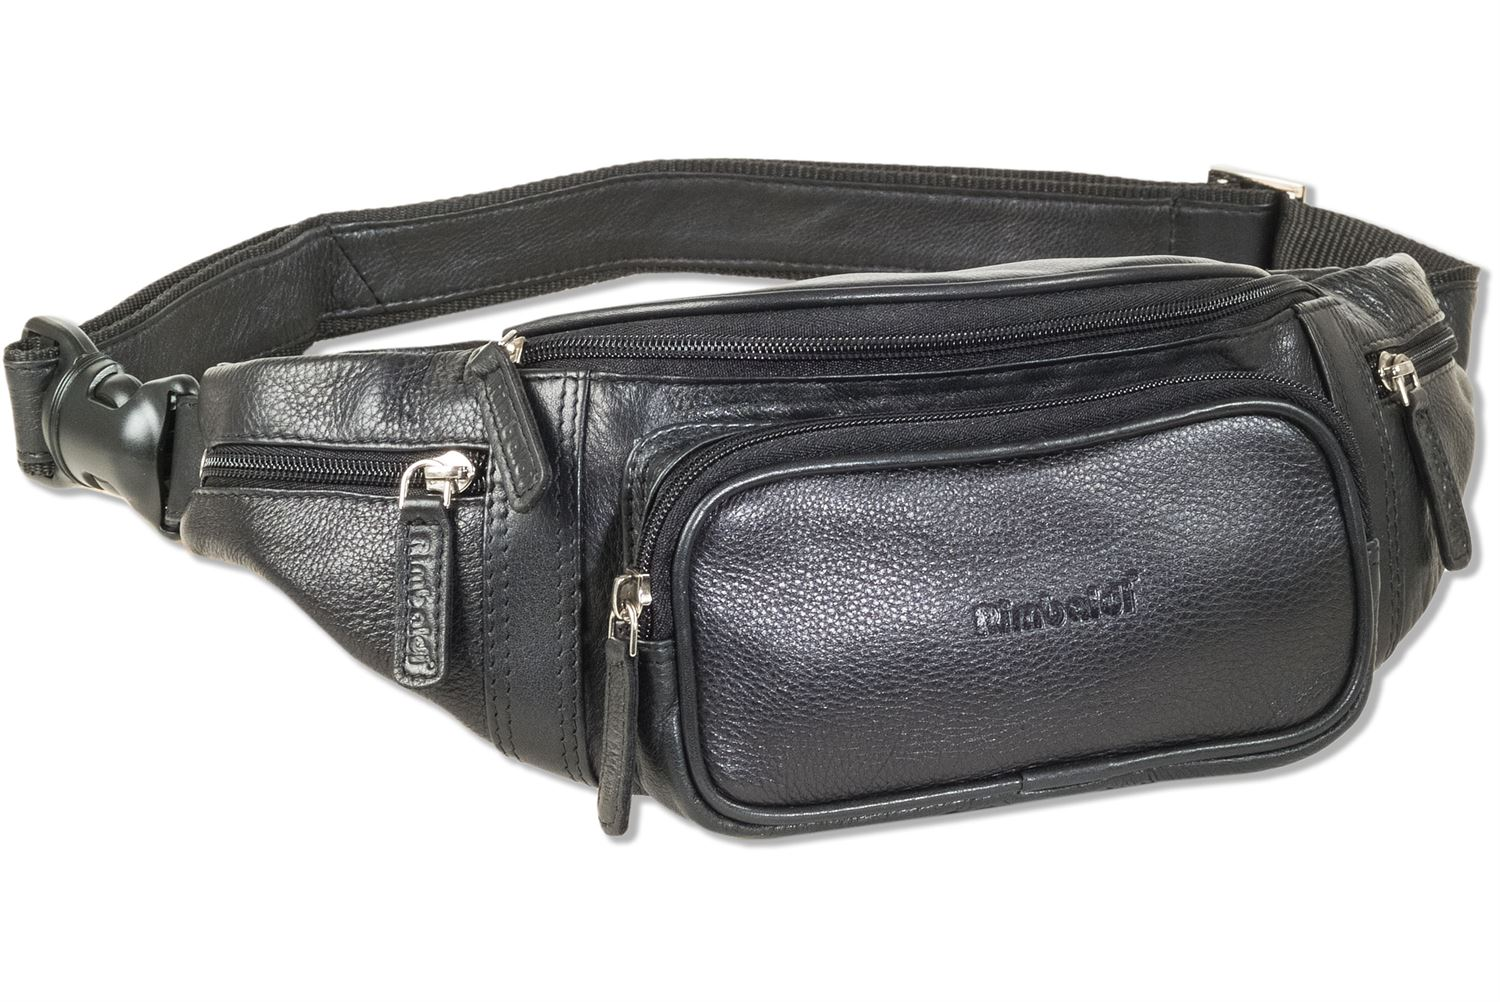 59b1ed7fa50 Rimbaldi® Large belt bag provides ample space by an extra front pocket